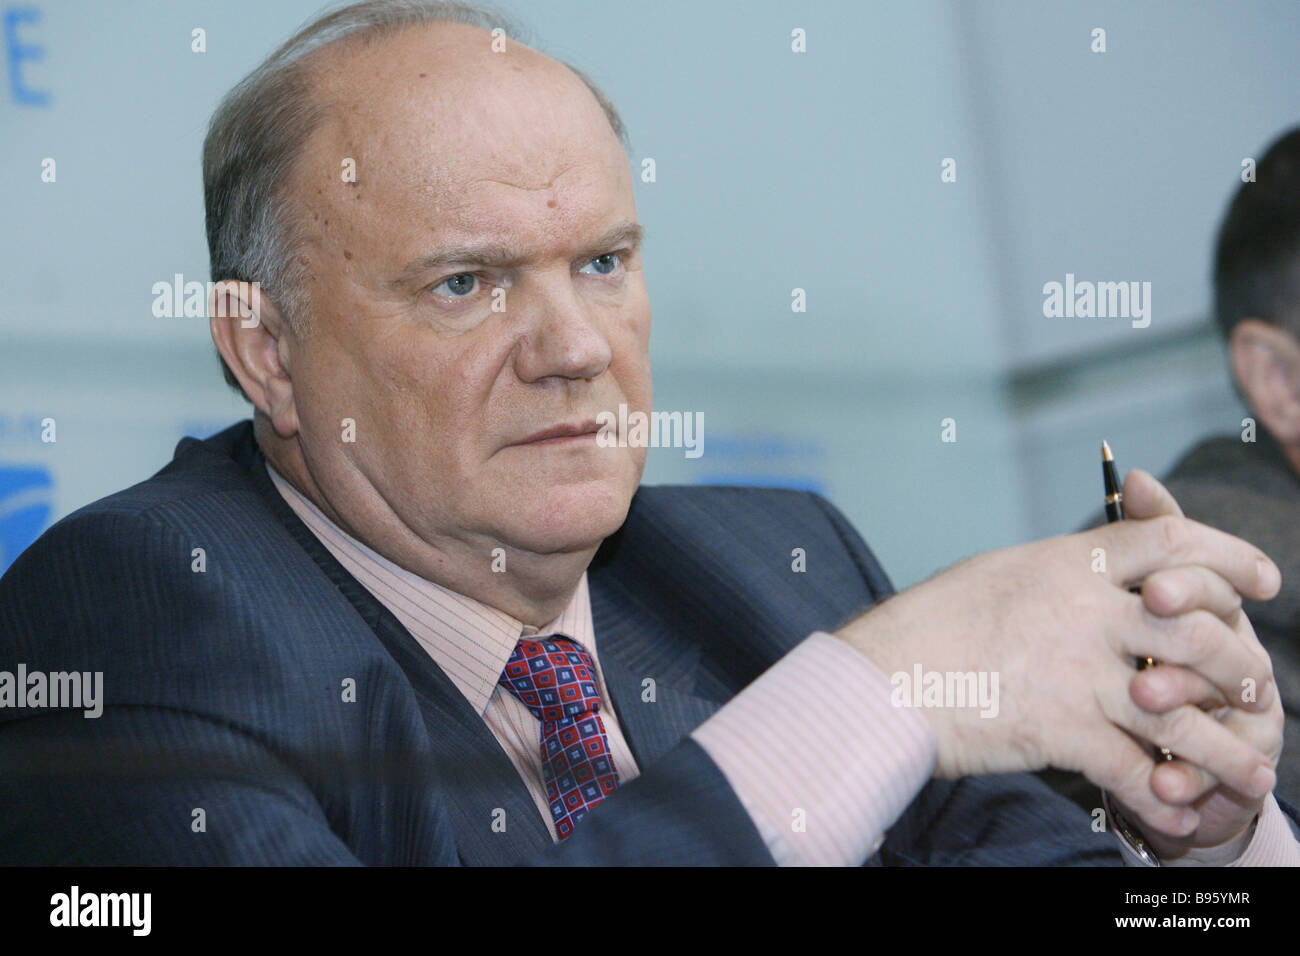 Gennady Zyuganov Chairman of the Russian Communist Party s Central Committee addresses RIA Novosti news conference - Stock Image